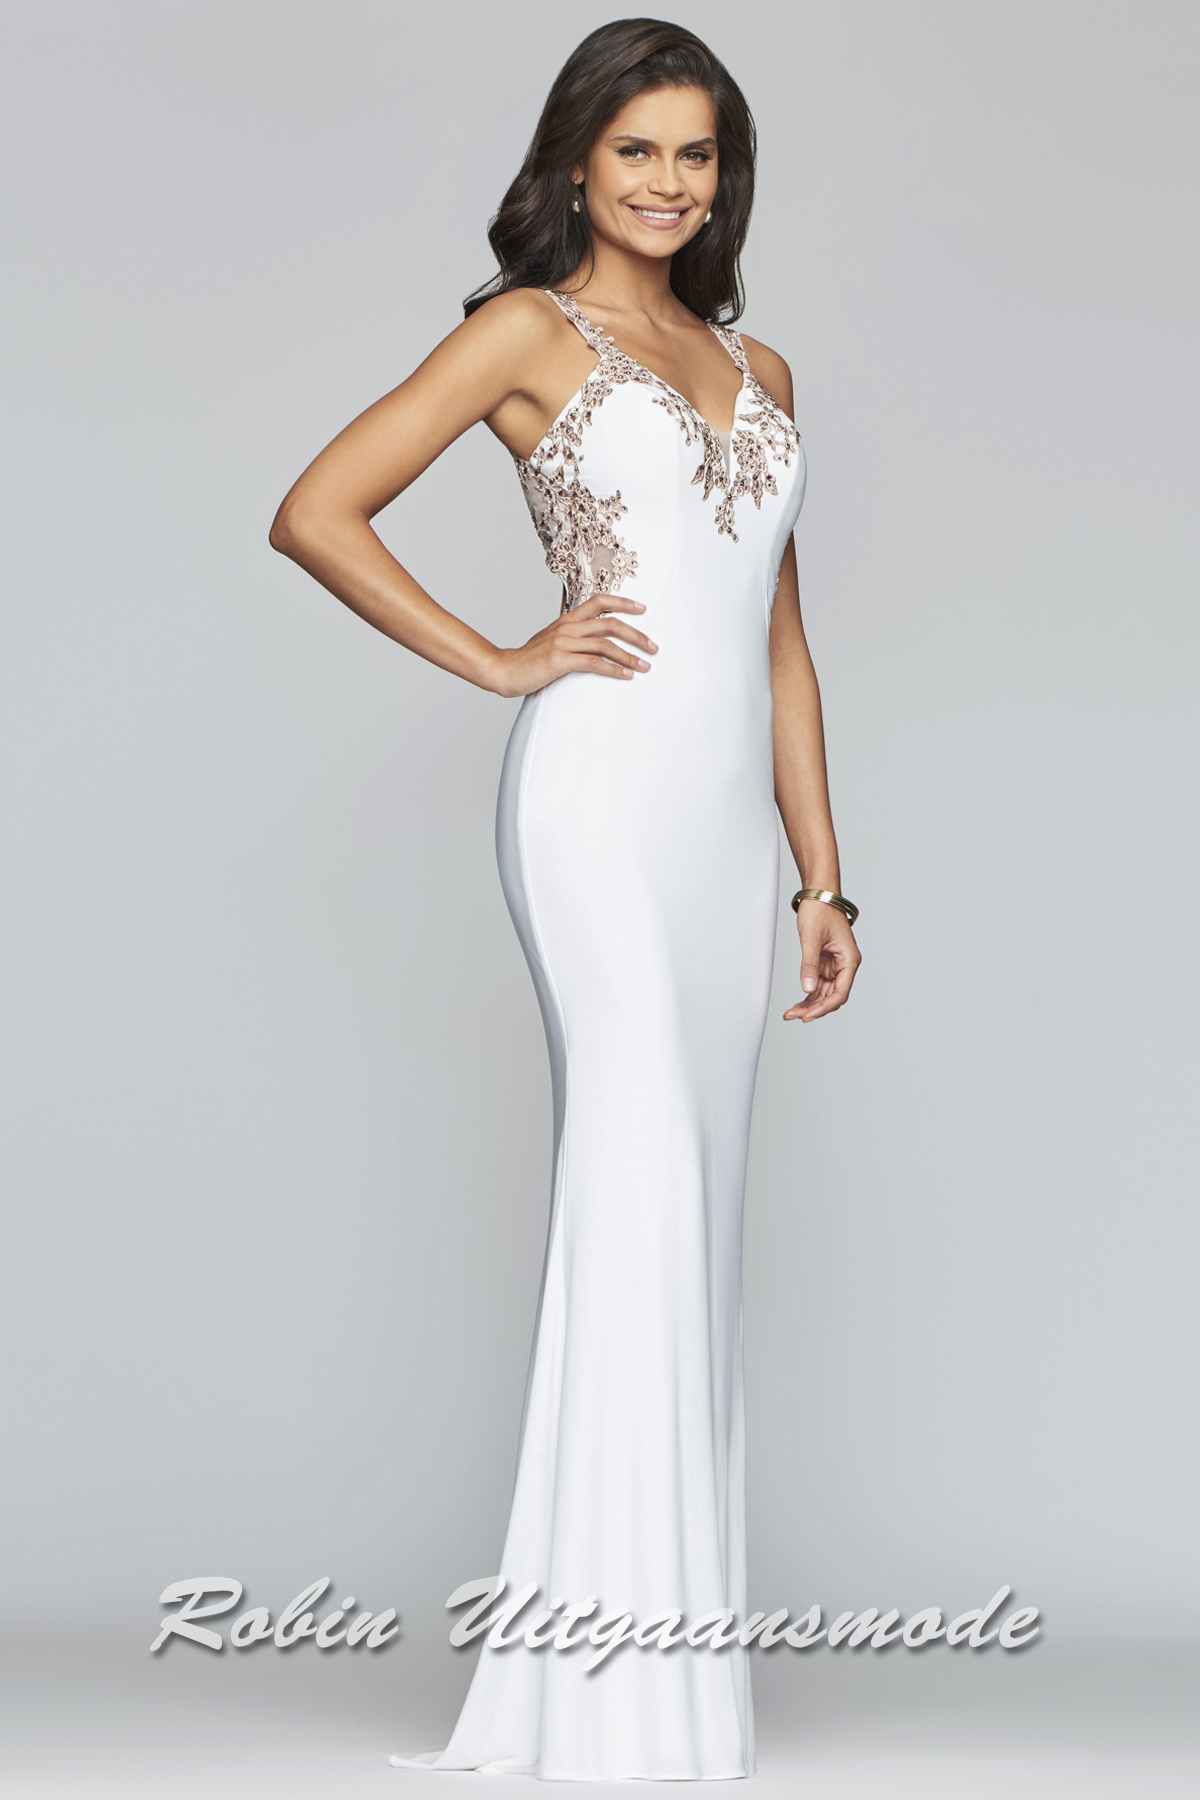 60f95331f787d Fit and flare wedding dress feature a v-neck decorated with lace applique  lines around